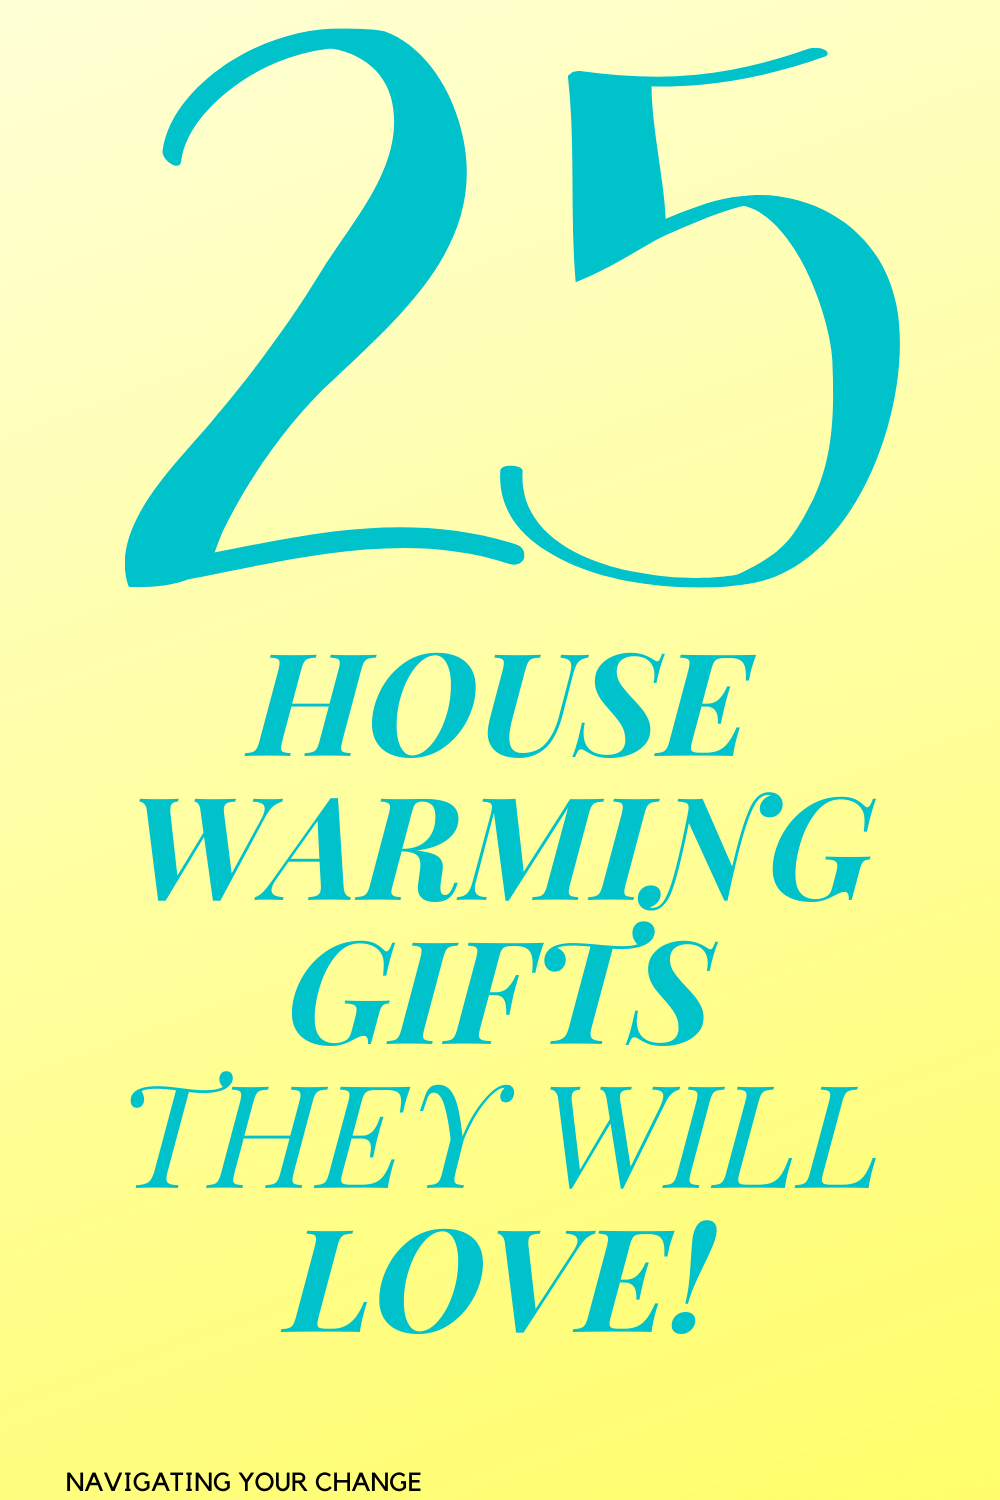 Are you looking for the perfect house warming gift for your friend or family member? This list gives you ideas that are practical and personable. Give a gift that your friend or family member will appreciate for years to come. #homeownership #house #gift #housewarming #navigatingyourchange #Amazon